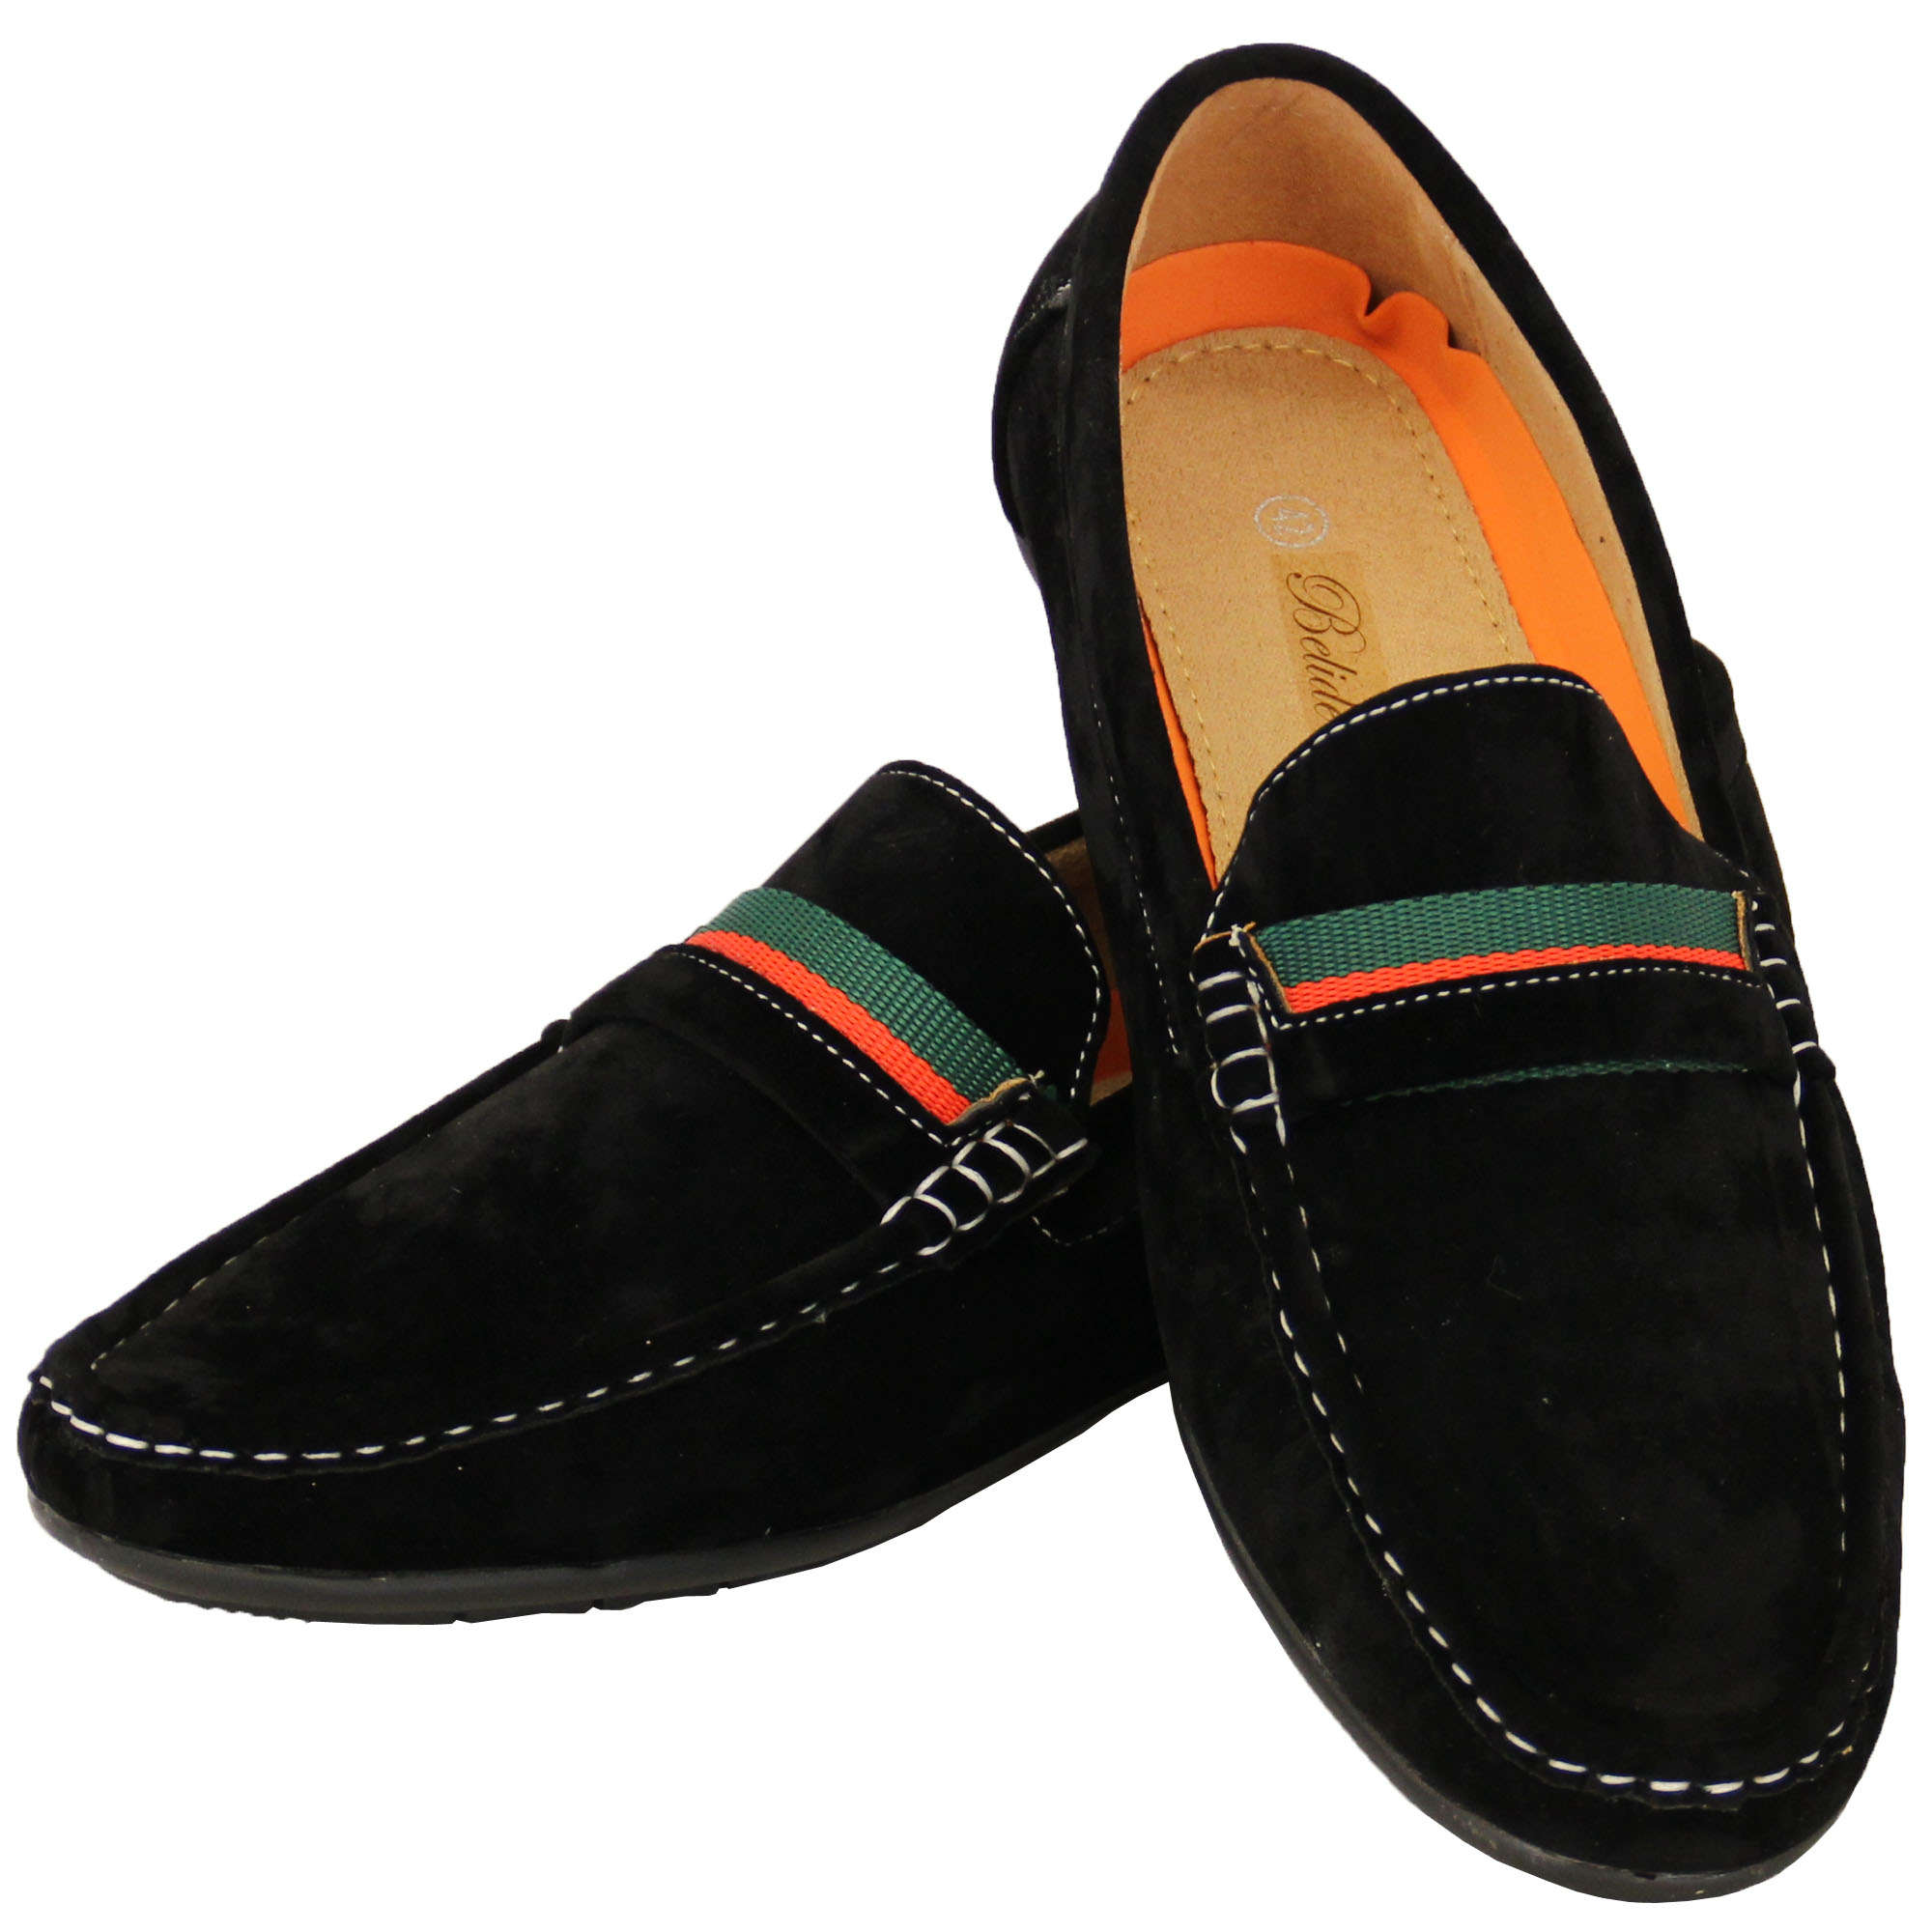 Mens-Moccasins-Suede-Look-Driving-Loafers-Slip-On-Boat-Shoes-Ribbon-Tassle-New thumbnail 5